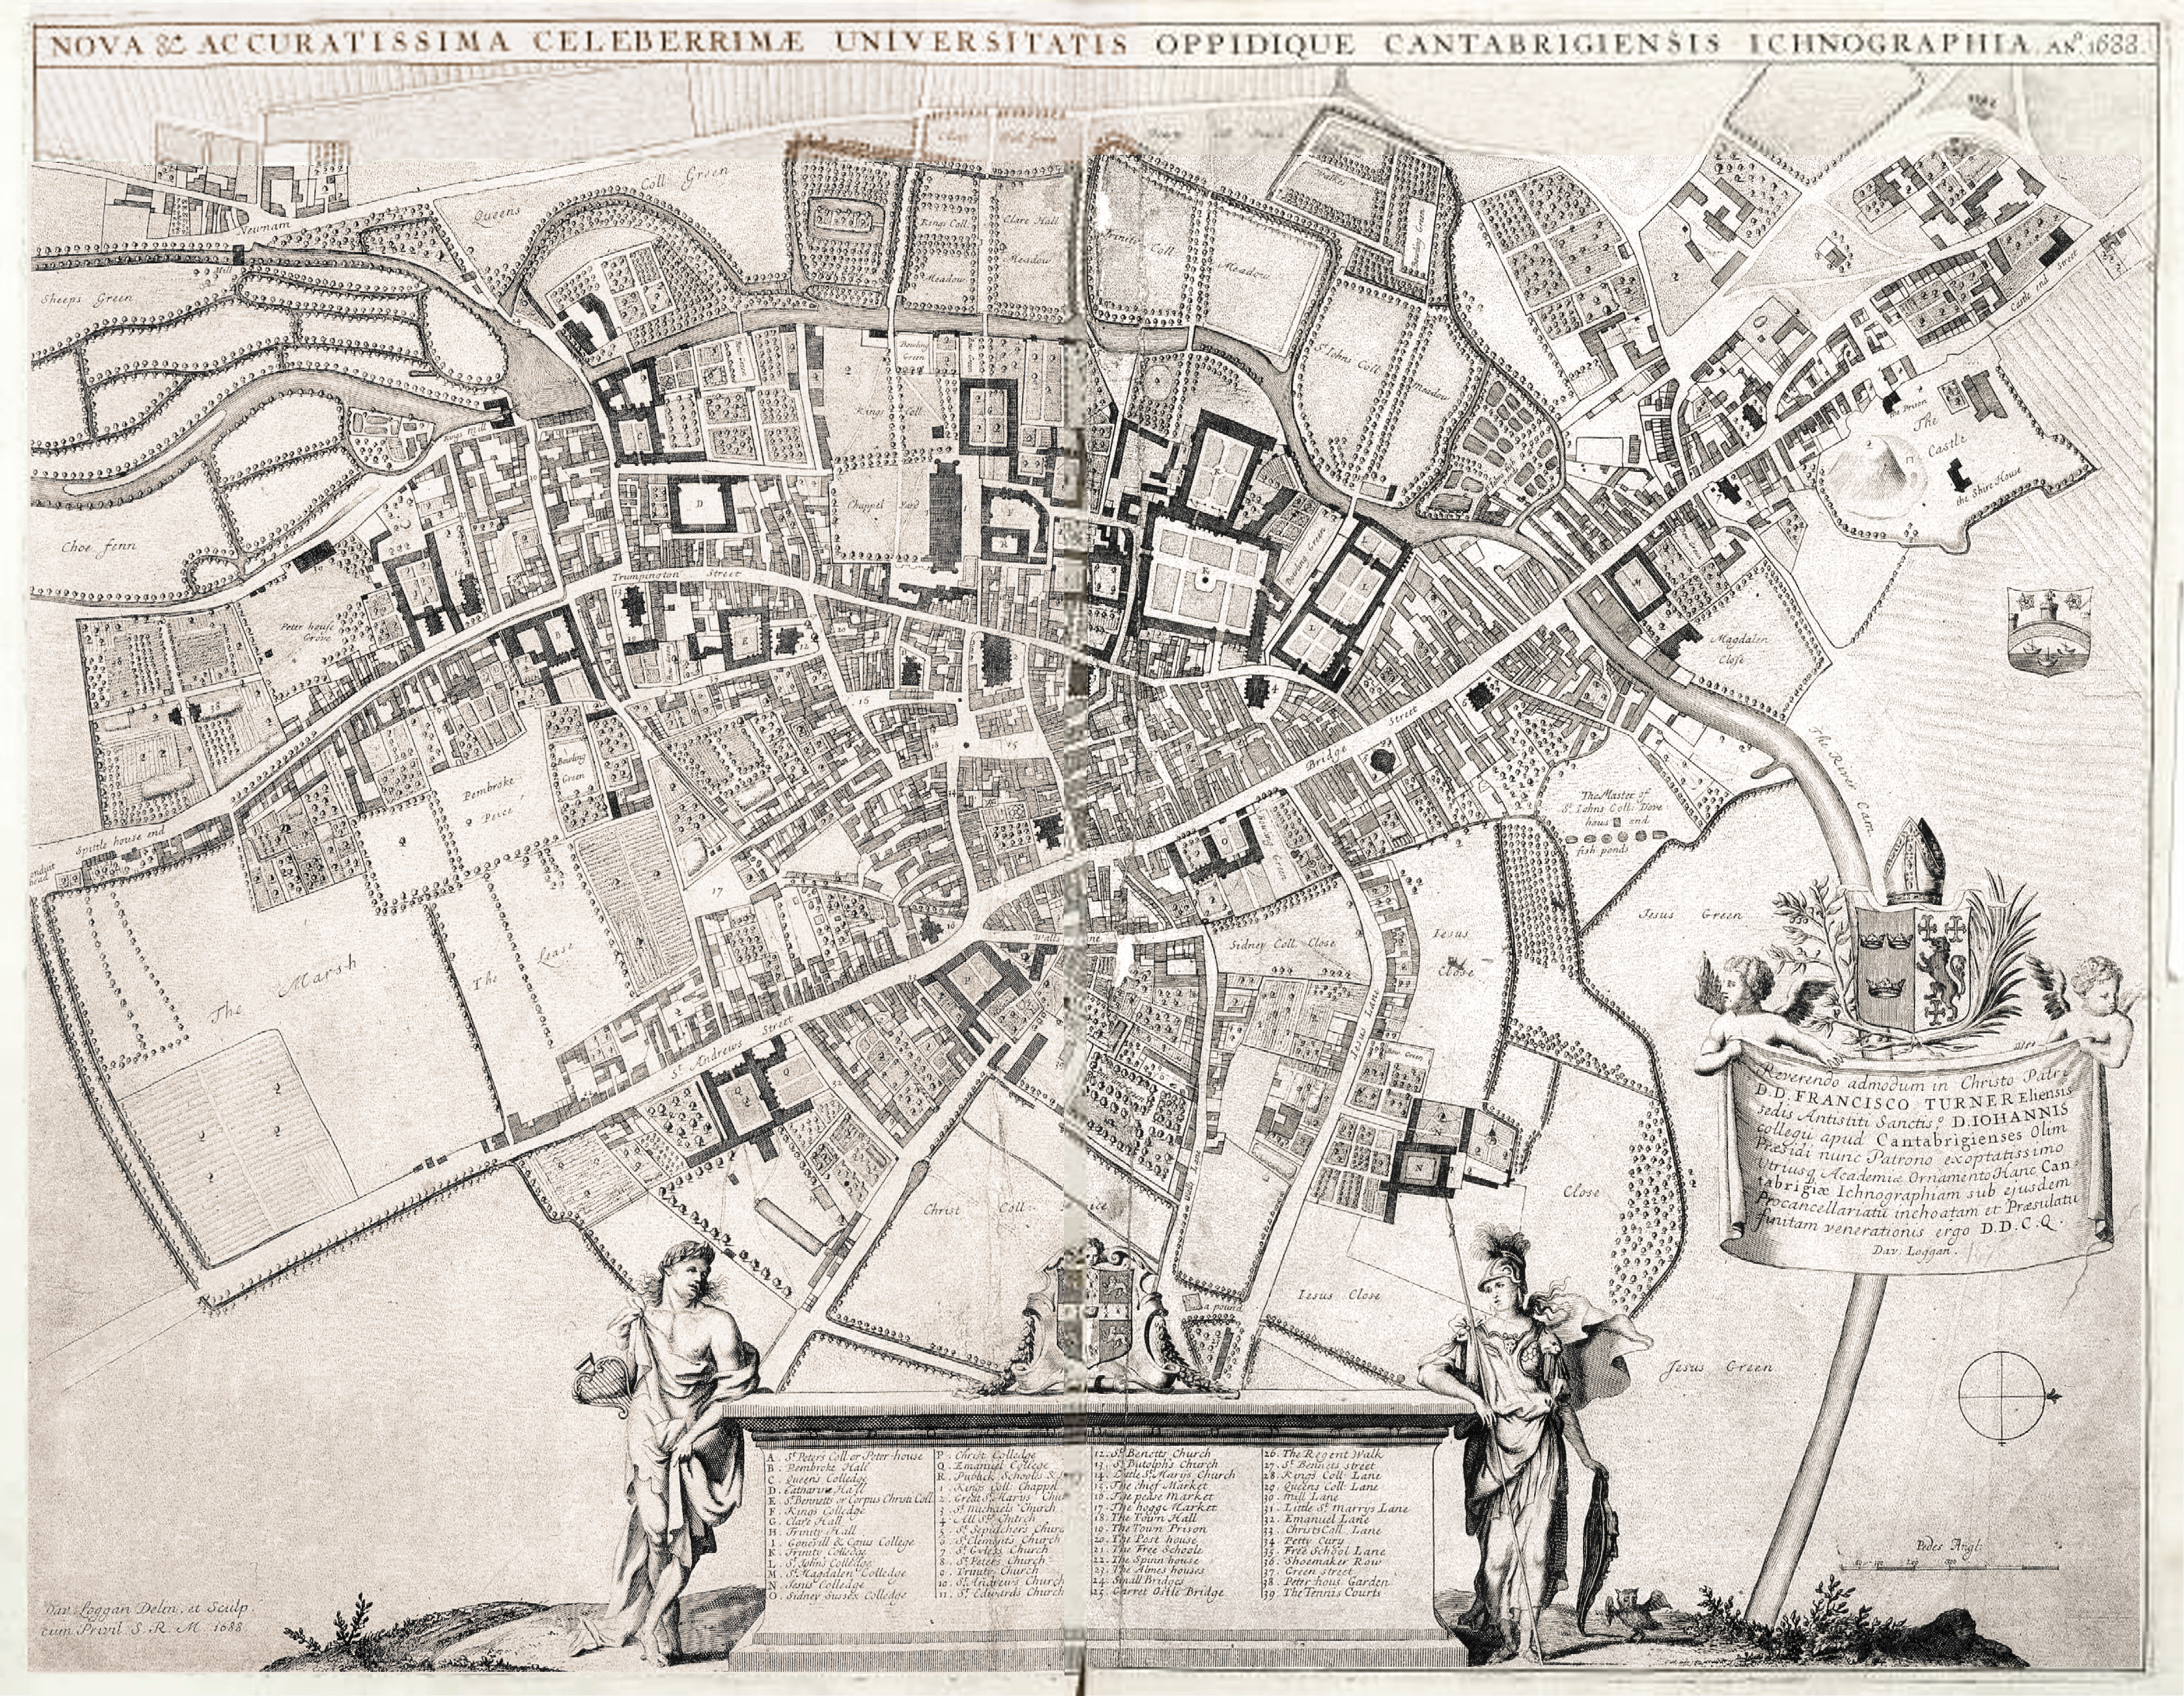 FileMap of Cambridge by Loggan 1690 mergedjpg Wikimedia Commons